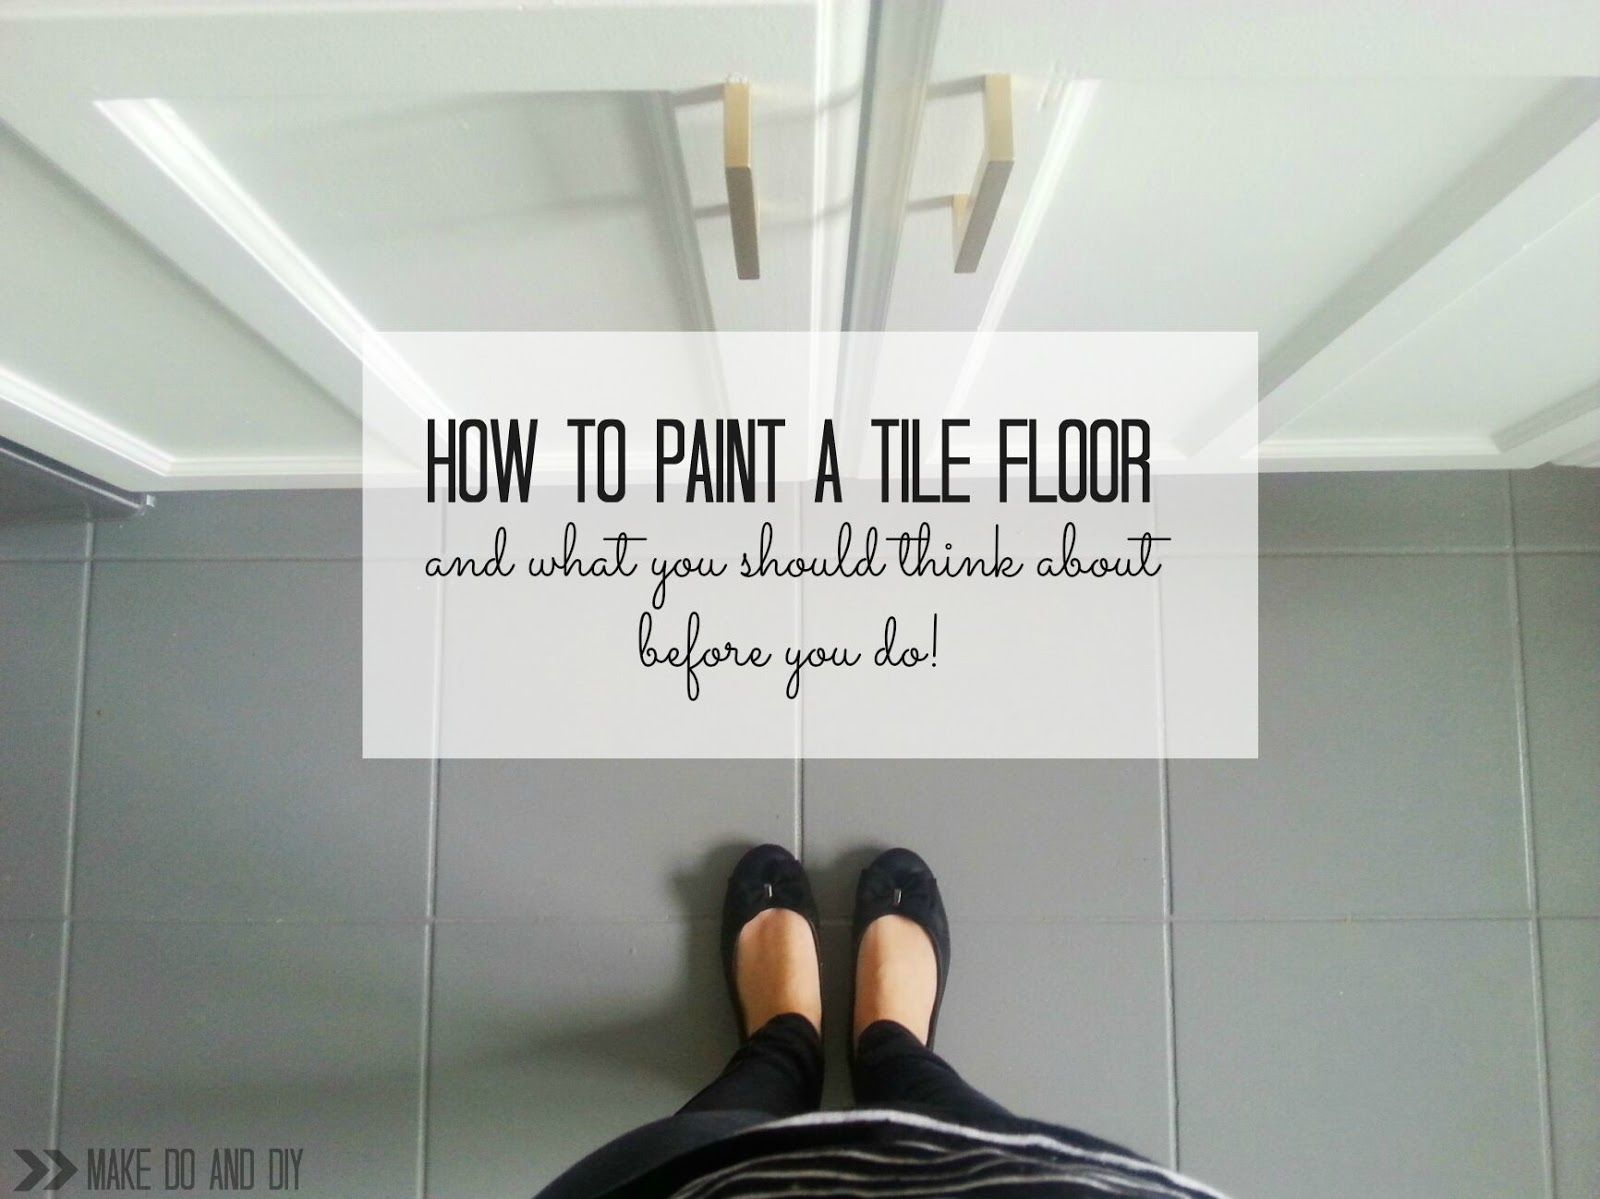 How to paint a tile floor and what you should think about before how to paint a tile floor and what you should think about before you do dailygadgetfo Images